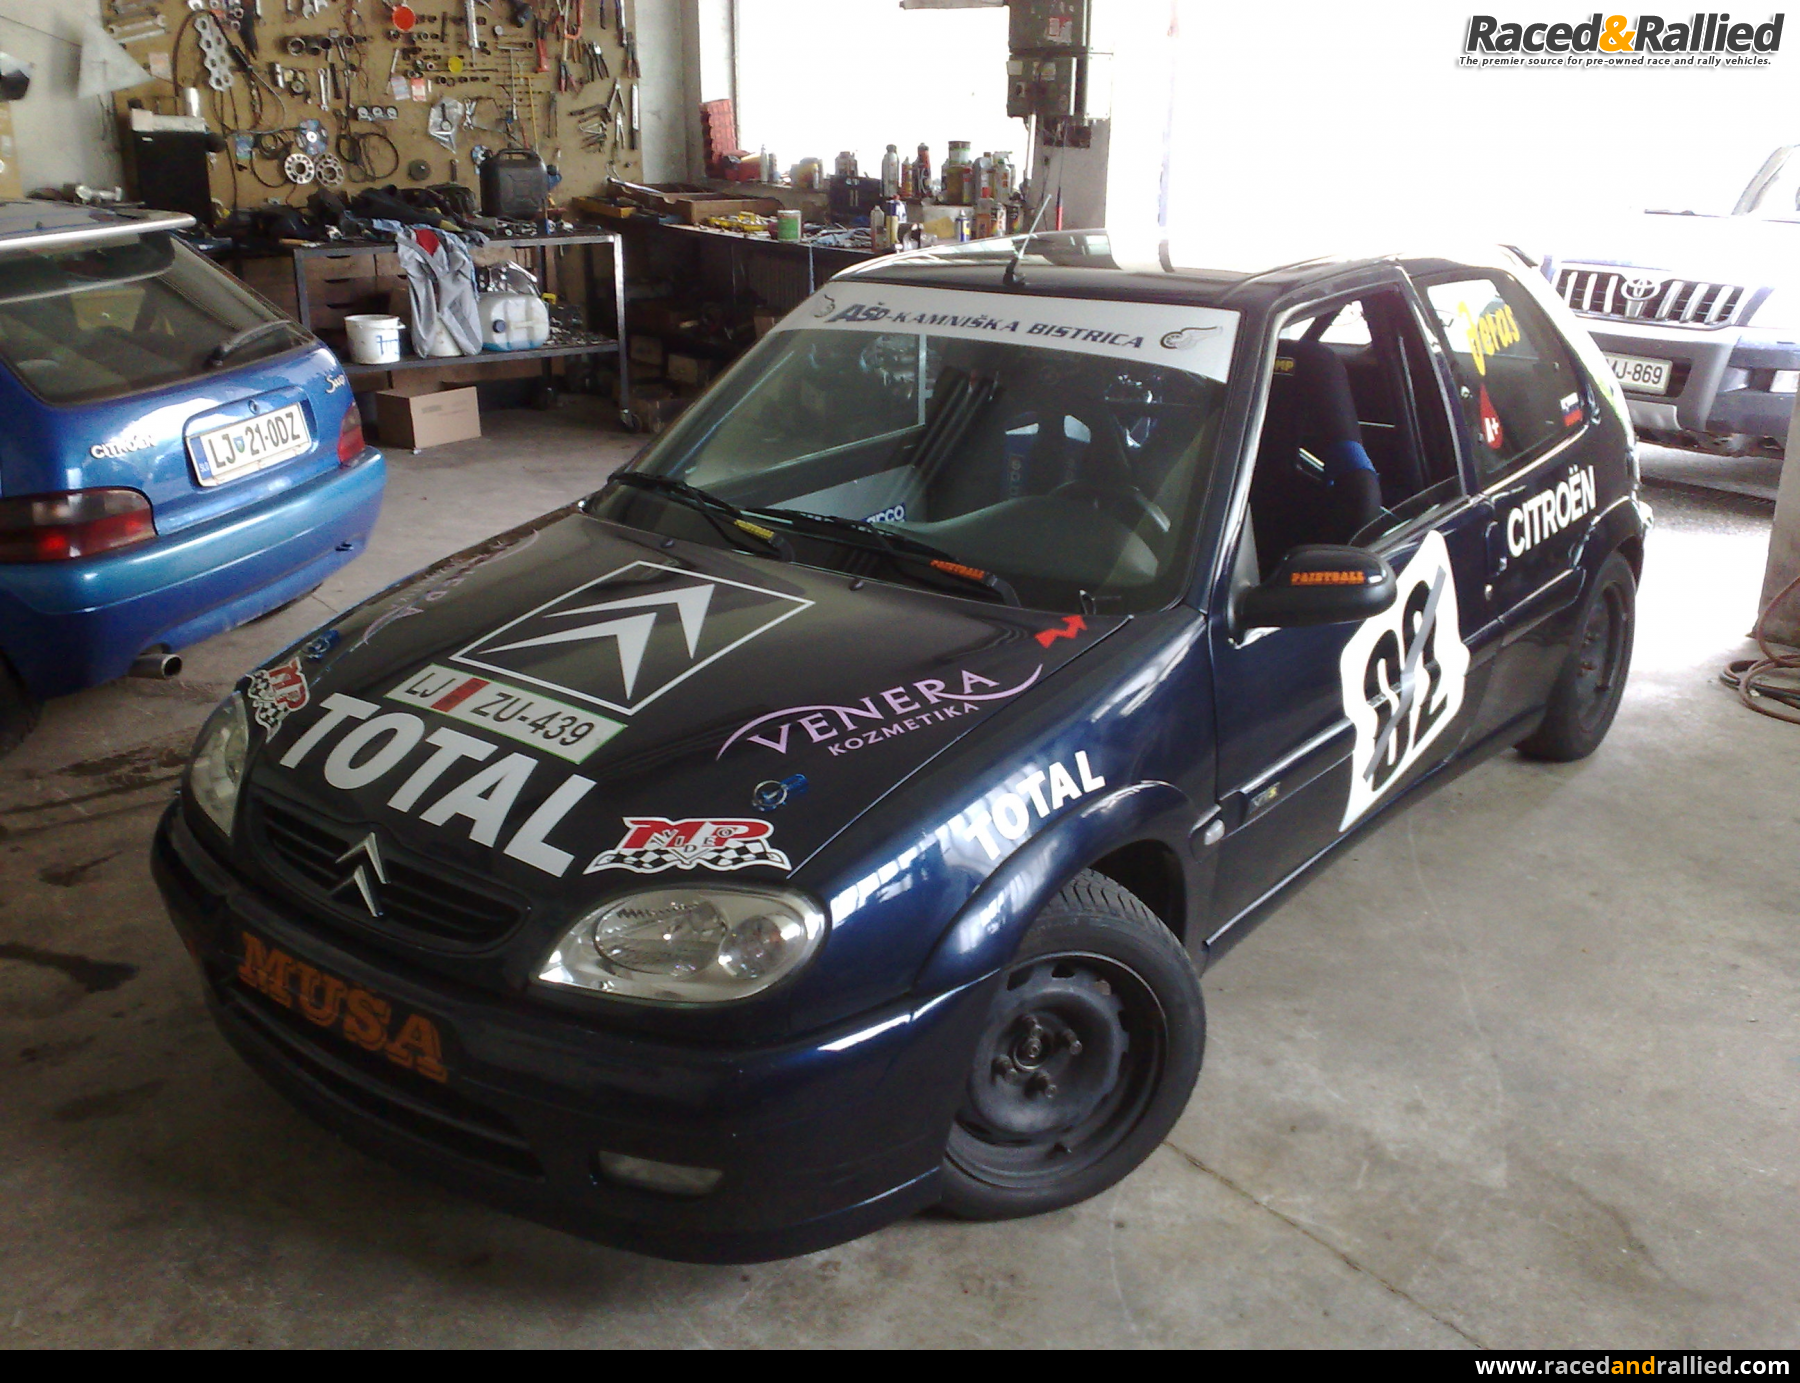 citroen saxo vts 1 6 16 v race cars for sale at raced rallied rally cars for sale race. Black Bedroom Furniture Sets. Home Design Ideas